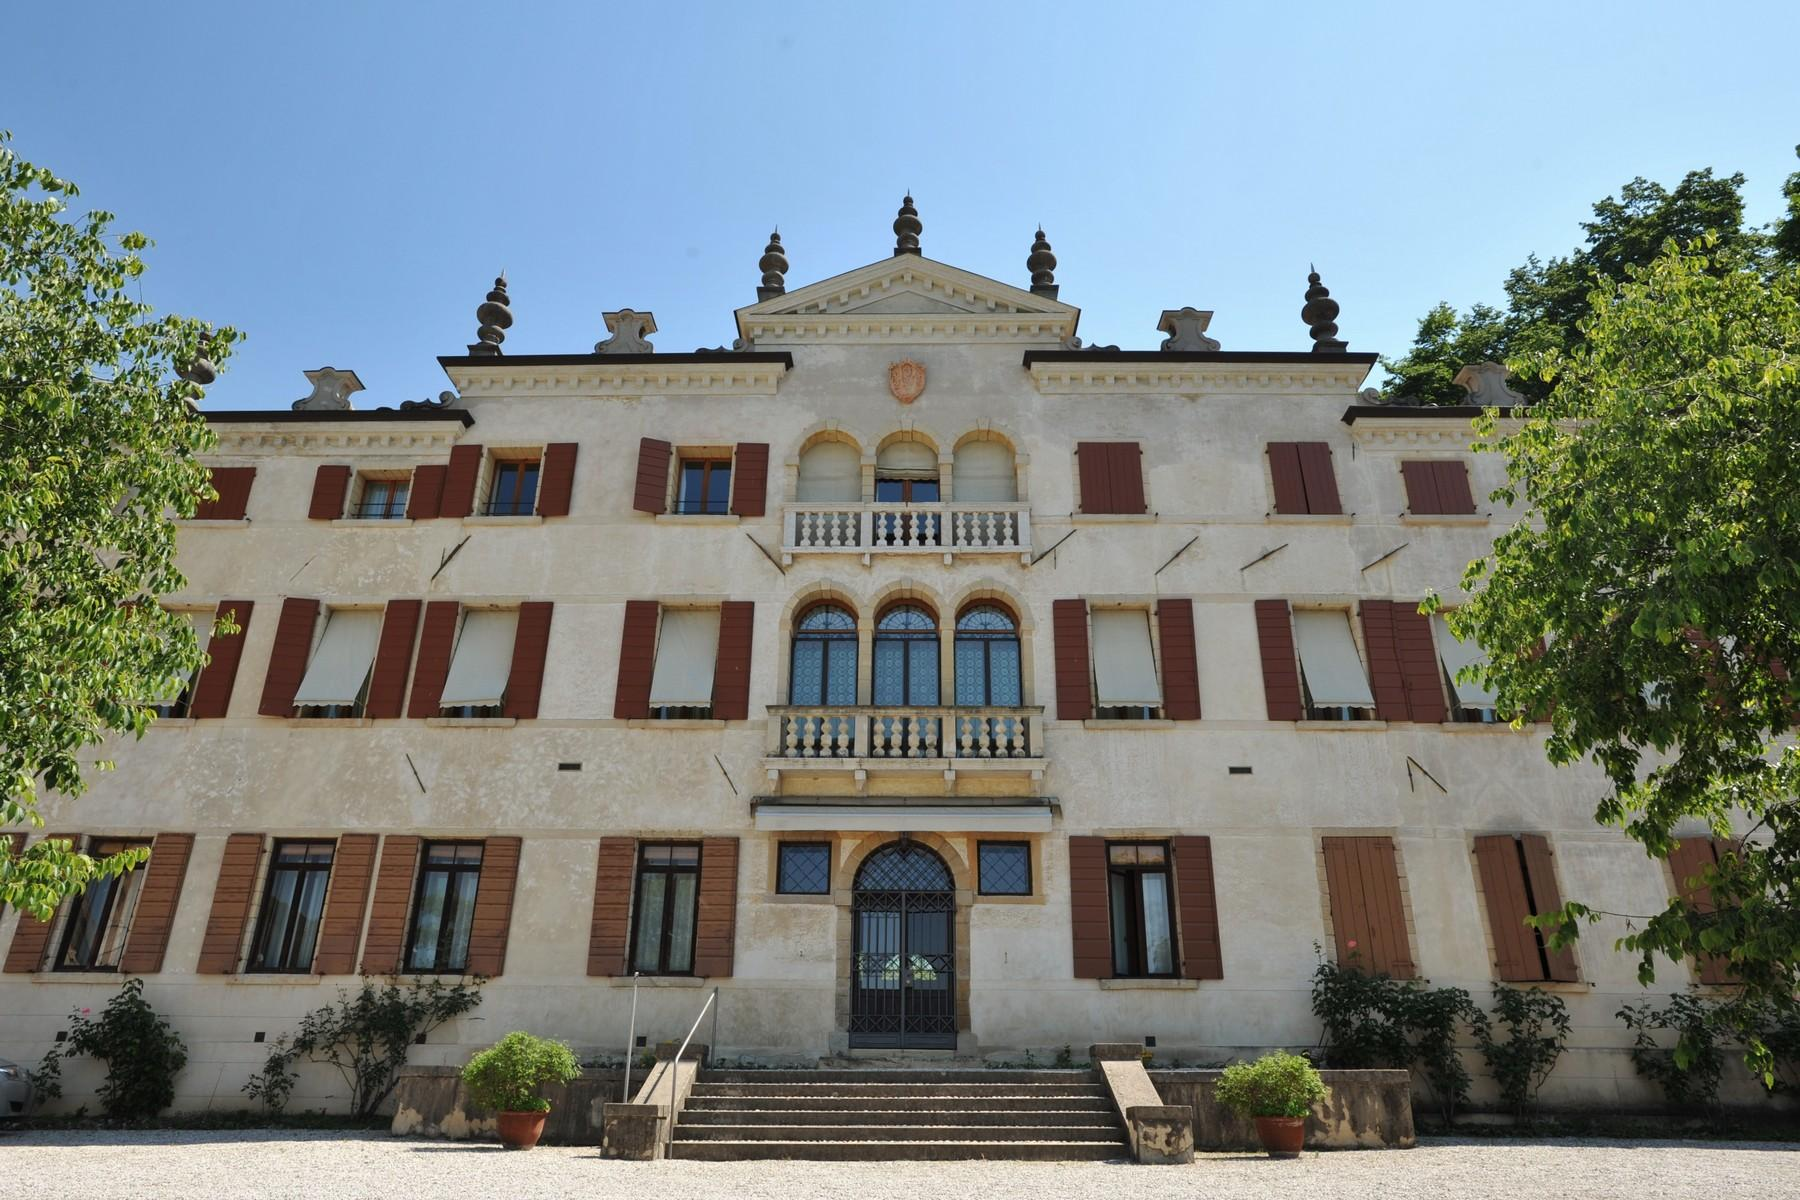 Wonderful penthouse in magnificent villa veneta - 11